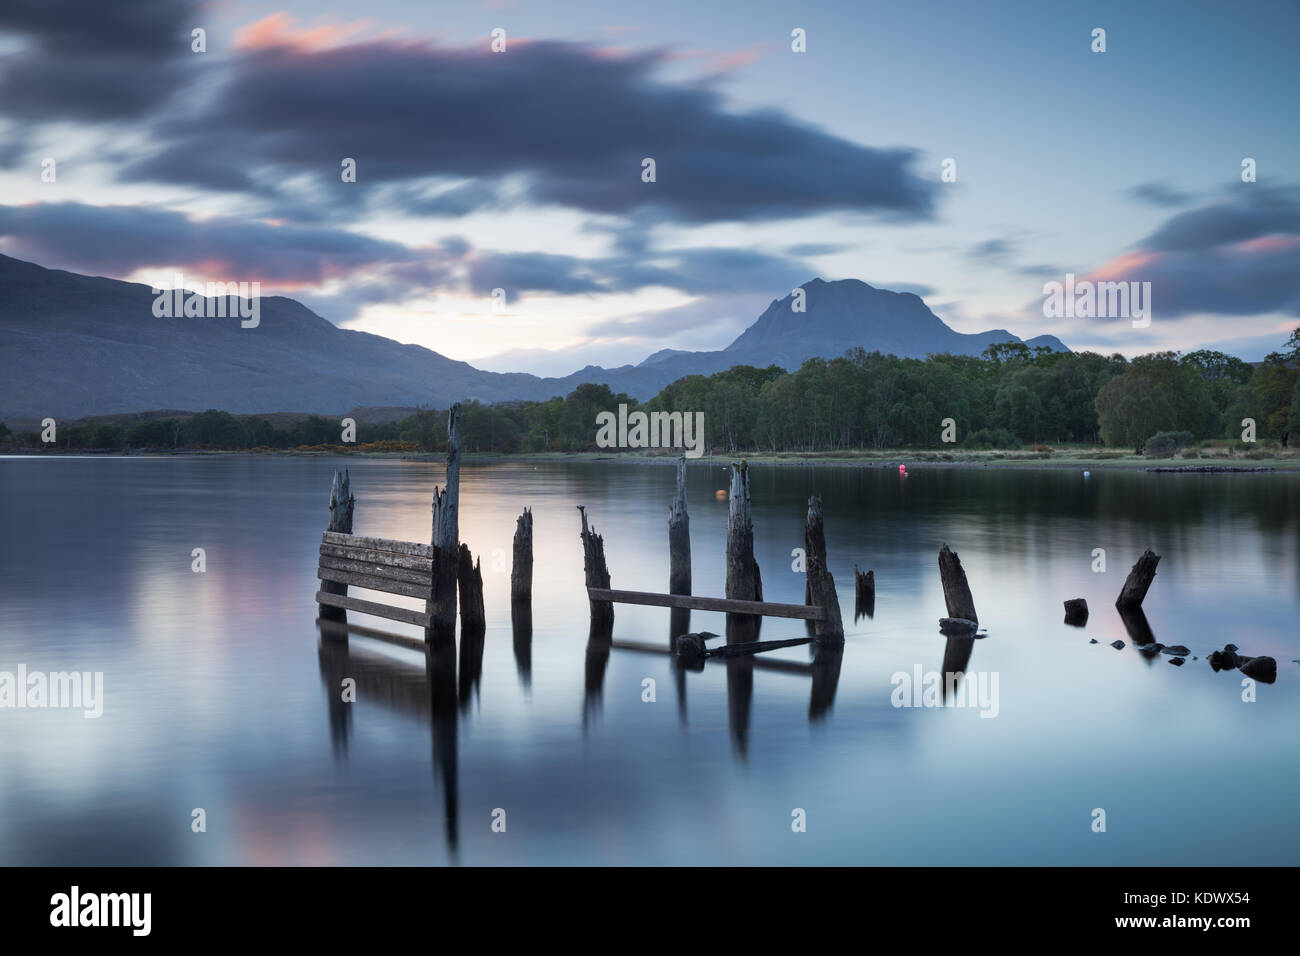 Loch Maree & Slioch at dawn, Wester Ross, Scotland, UK - Stock Image